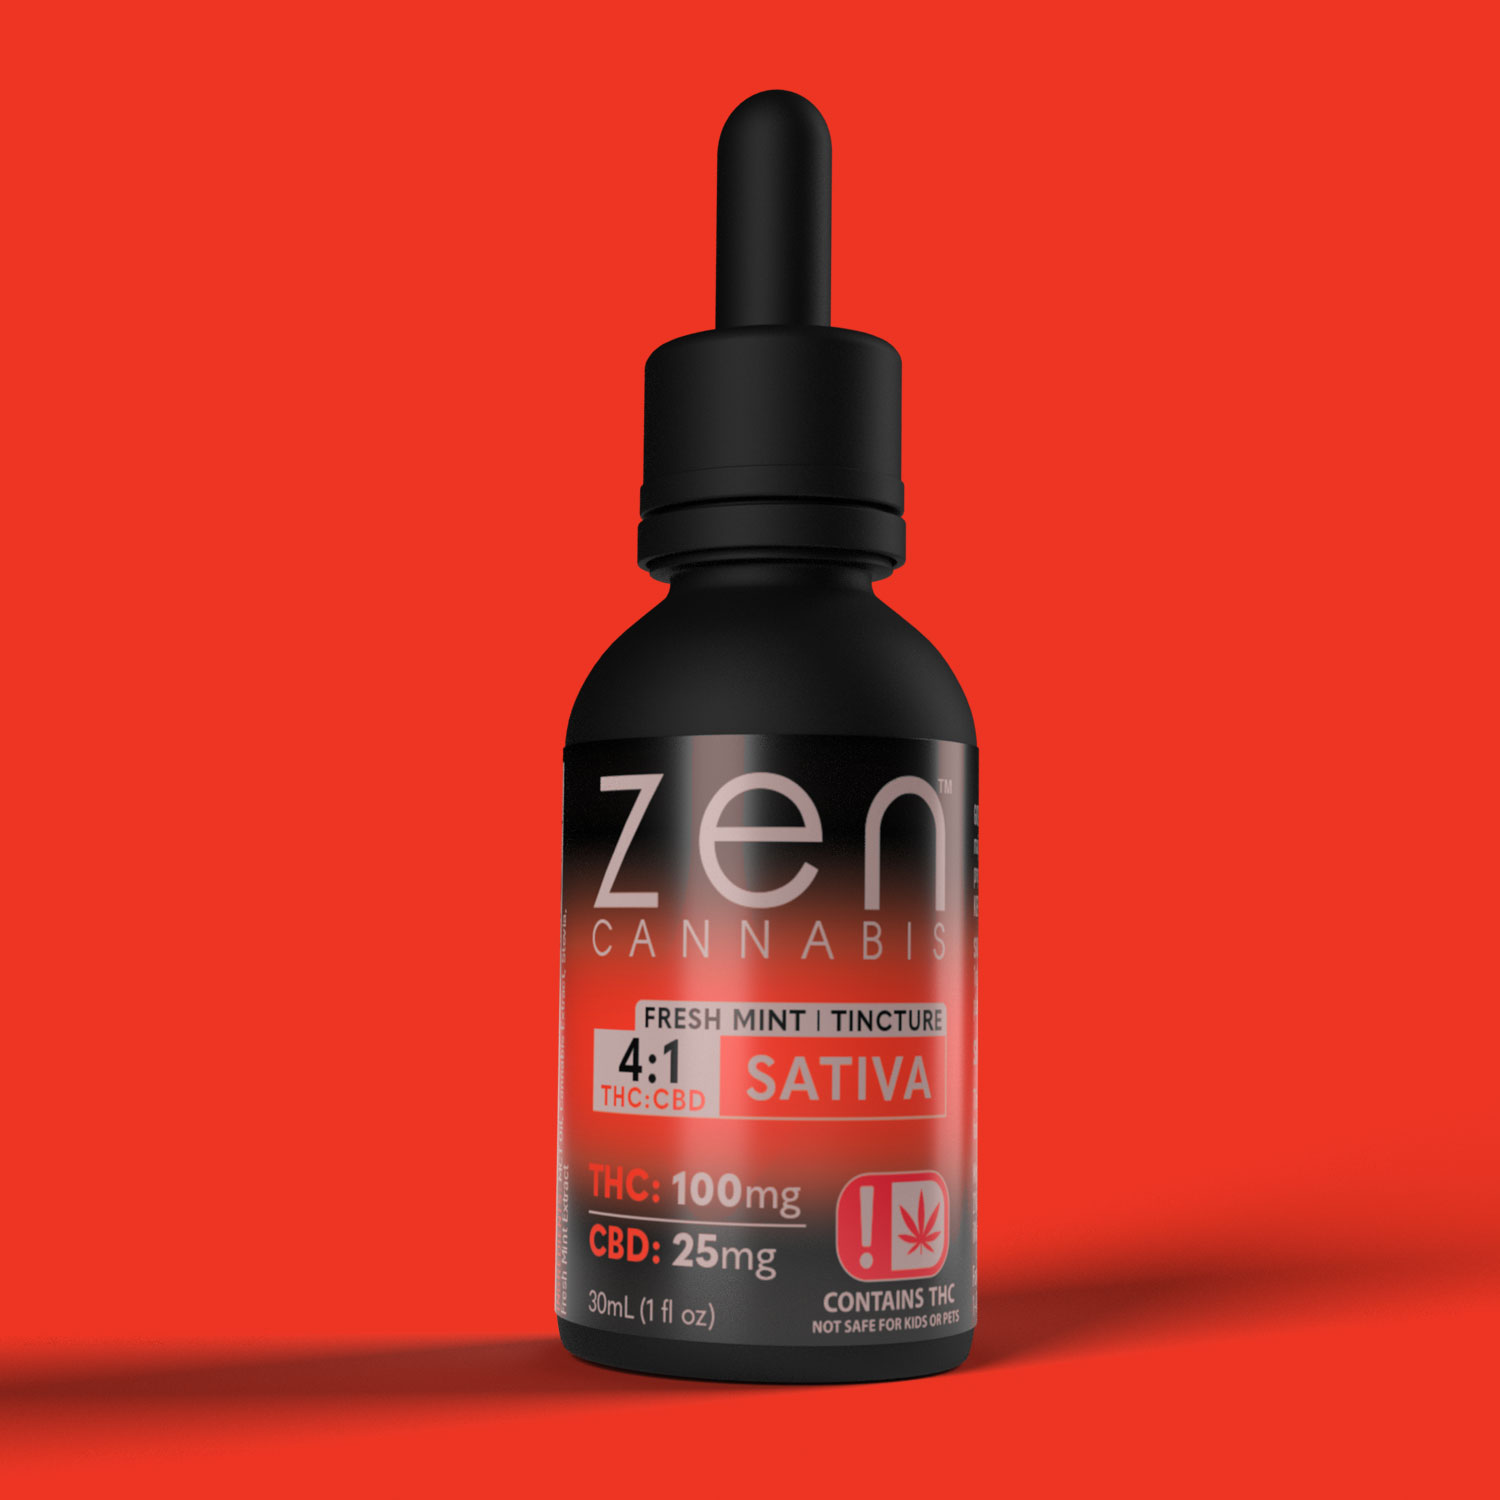 FRESH MINT 100mg THC per bottle 25mg CBD per bottle Bursting with fresh mint flavor, the Zen Cannabis Sativa tincture provides the incredible benefits of both THC, CBD and terpenes to give you an uplifting and rejuvenating experience without dragging you down.  100mg THC | 25mg CBD 1oz (30ml)